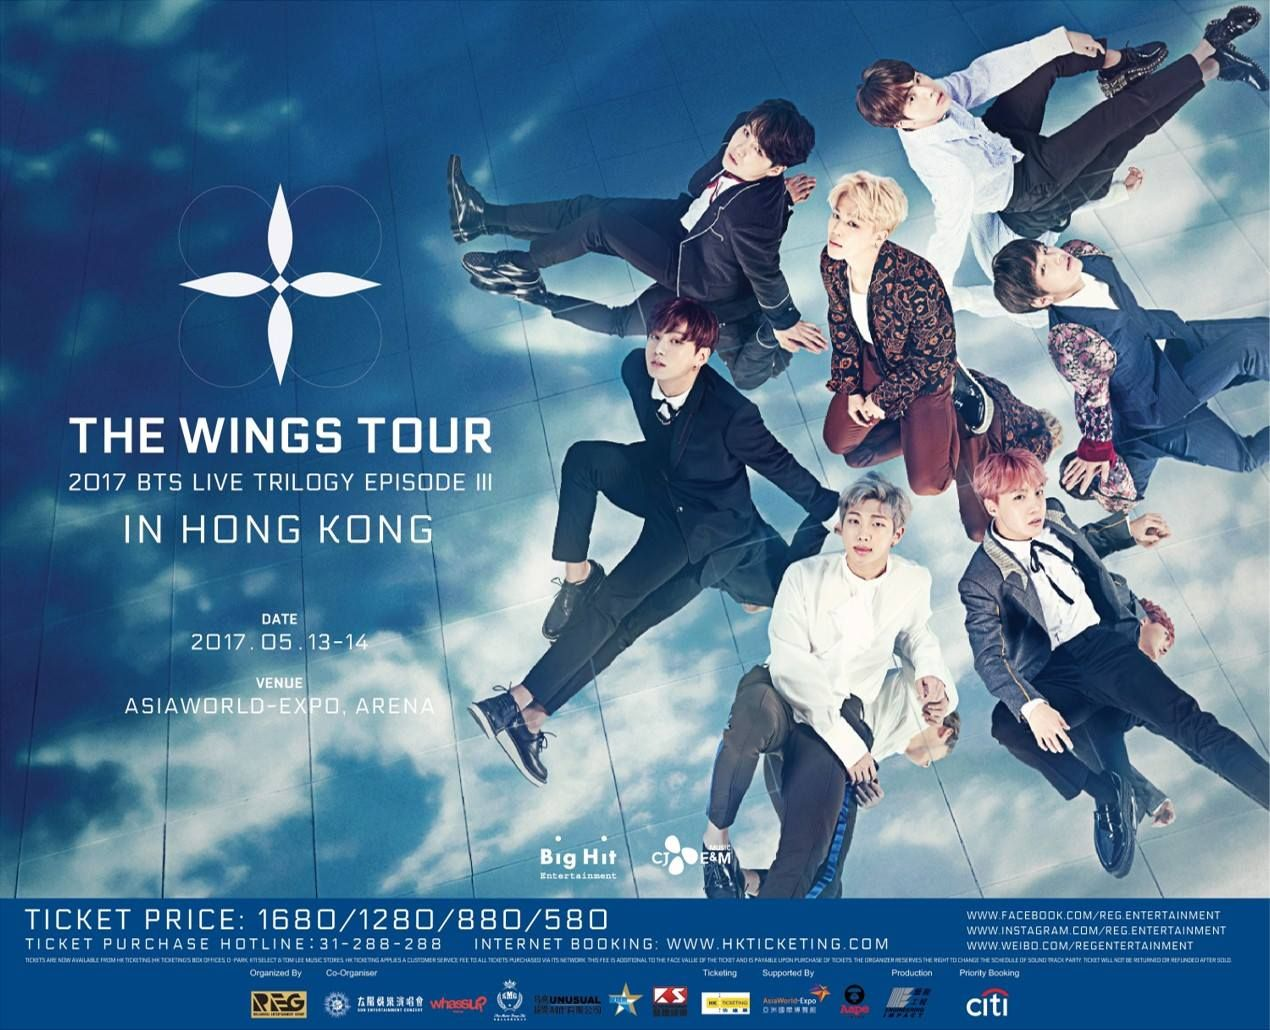 Bts live trilogy episode iii the wings tour in hong kong 2017 2017 bts live trilogy episode iii the wings tour in hong kong will take place at asiaworld expo arena gumiabroncs Gallery